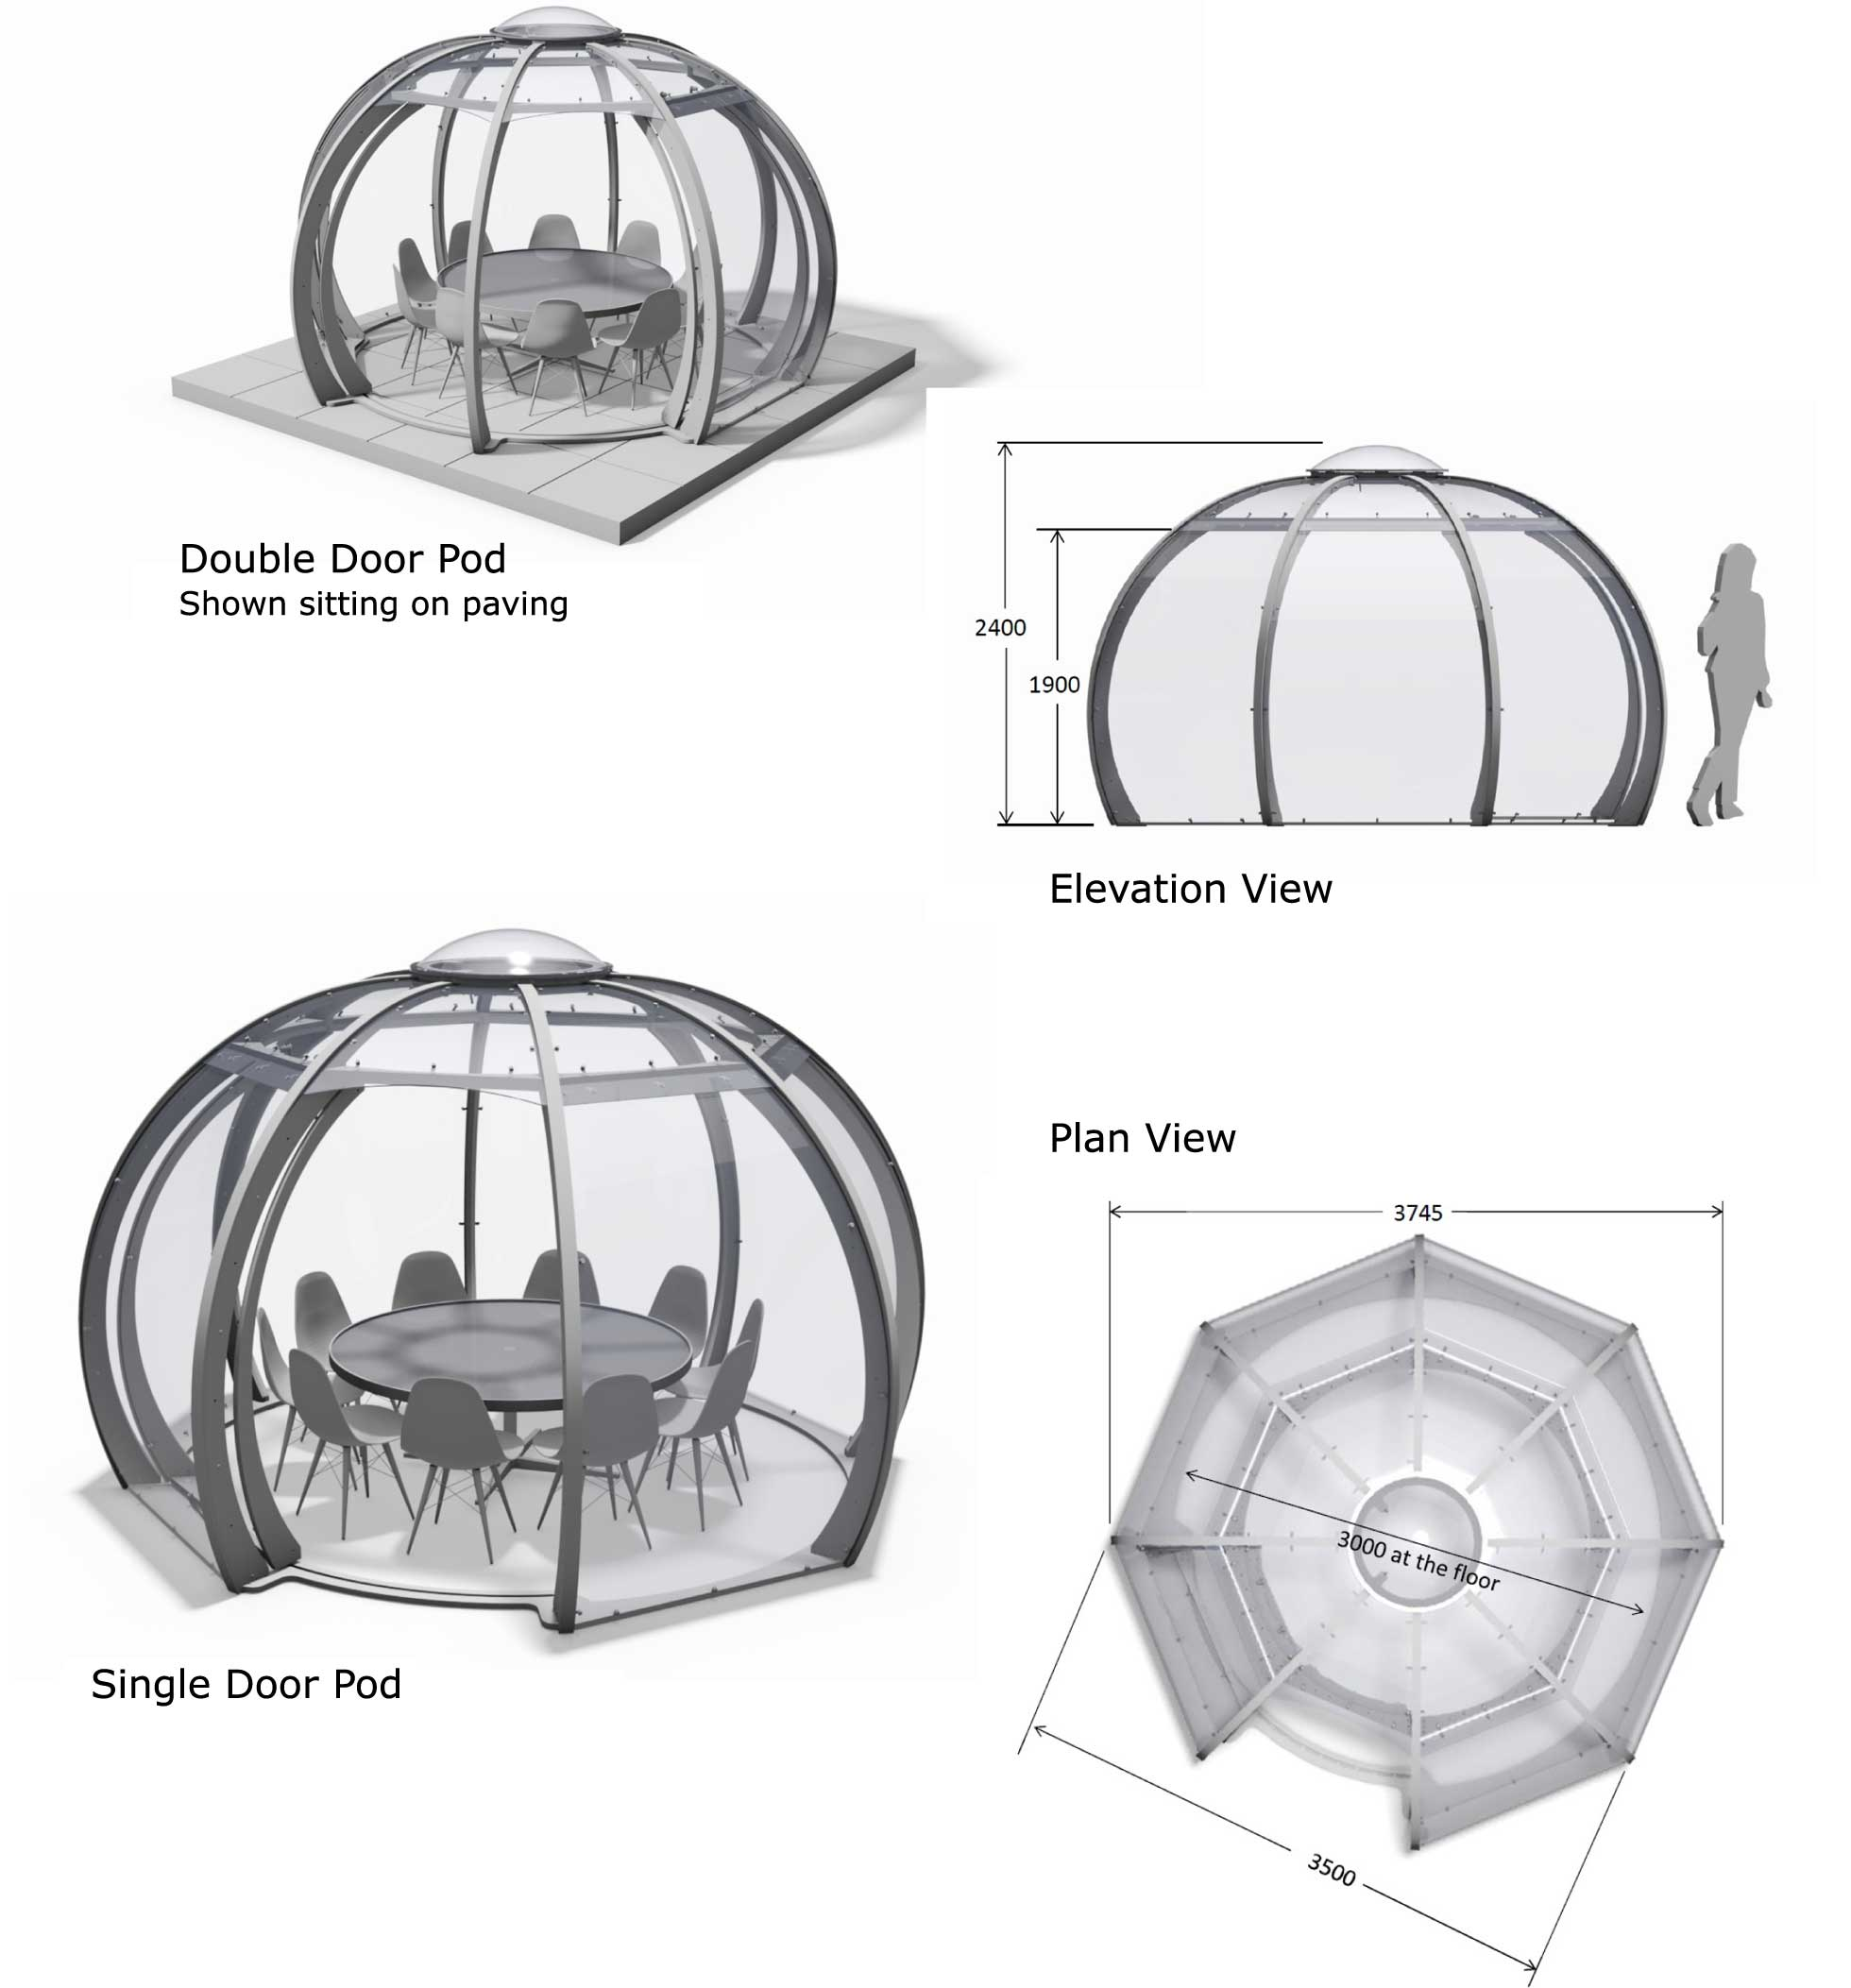 3d CGI renderings of pods in perspective, plan and elevation views